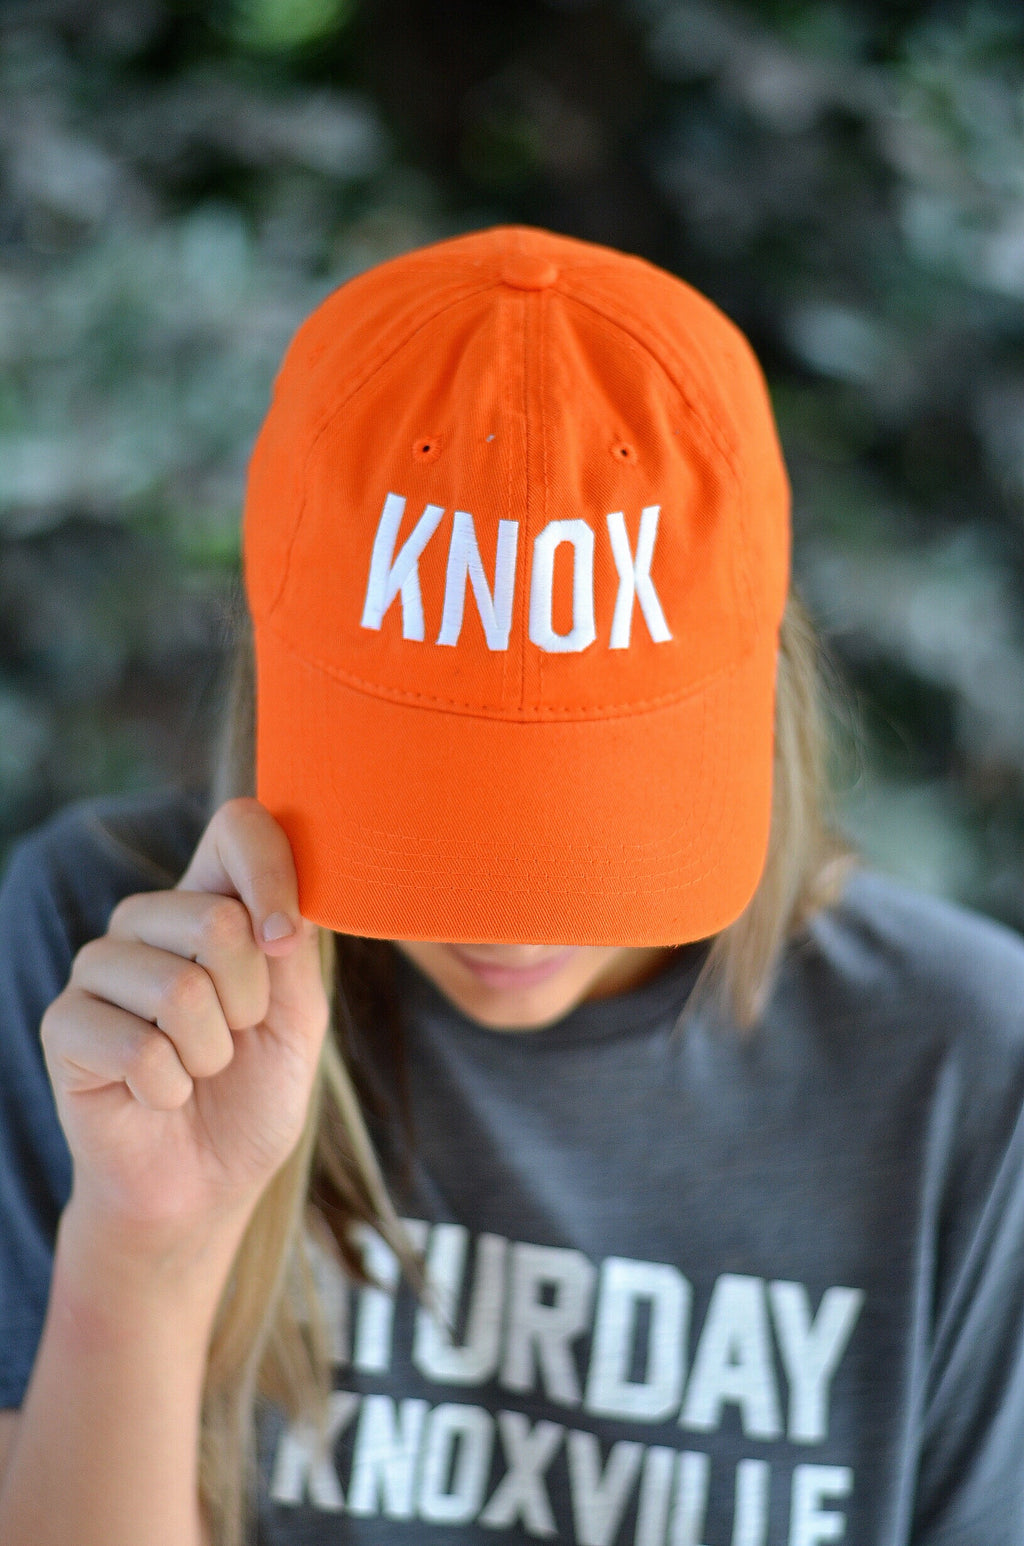 KNOX Hat, Orange with White Letters